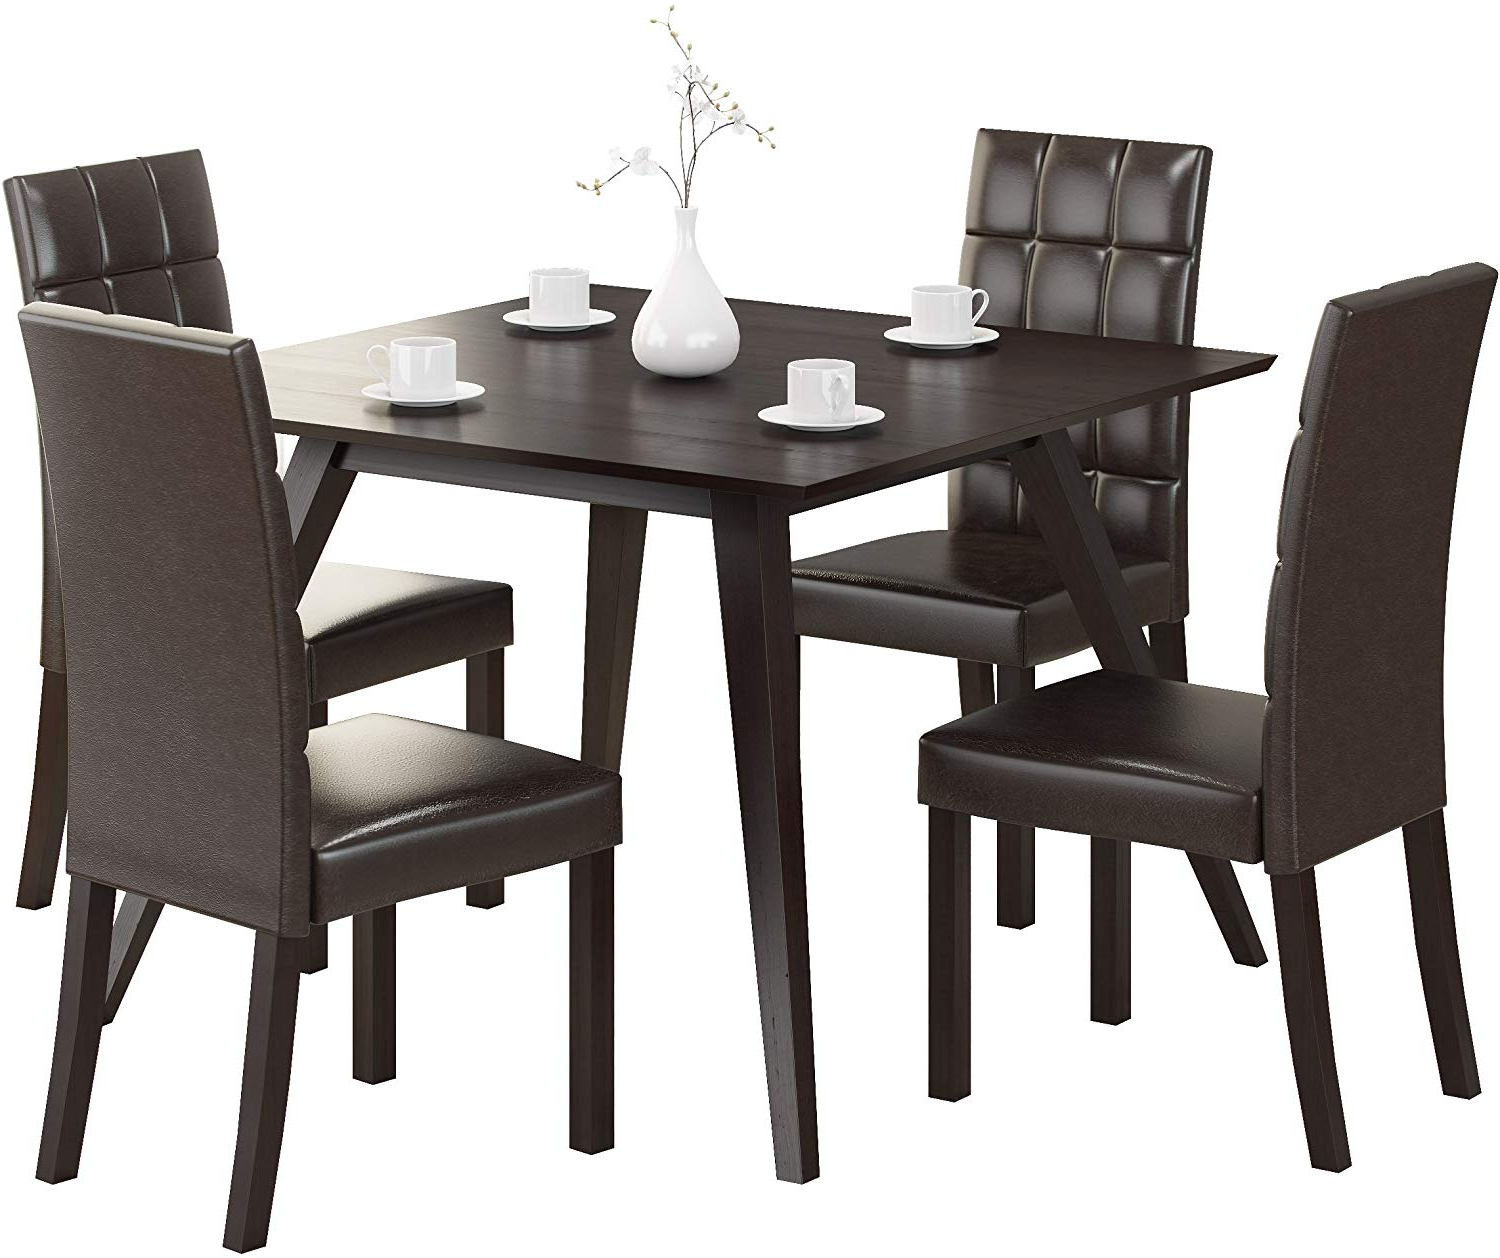 Corliving Atwood Dining Set, Dark Brown In Well Liked Atwood Transitional Square Dining Tables (View 15 of 30)